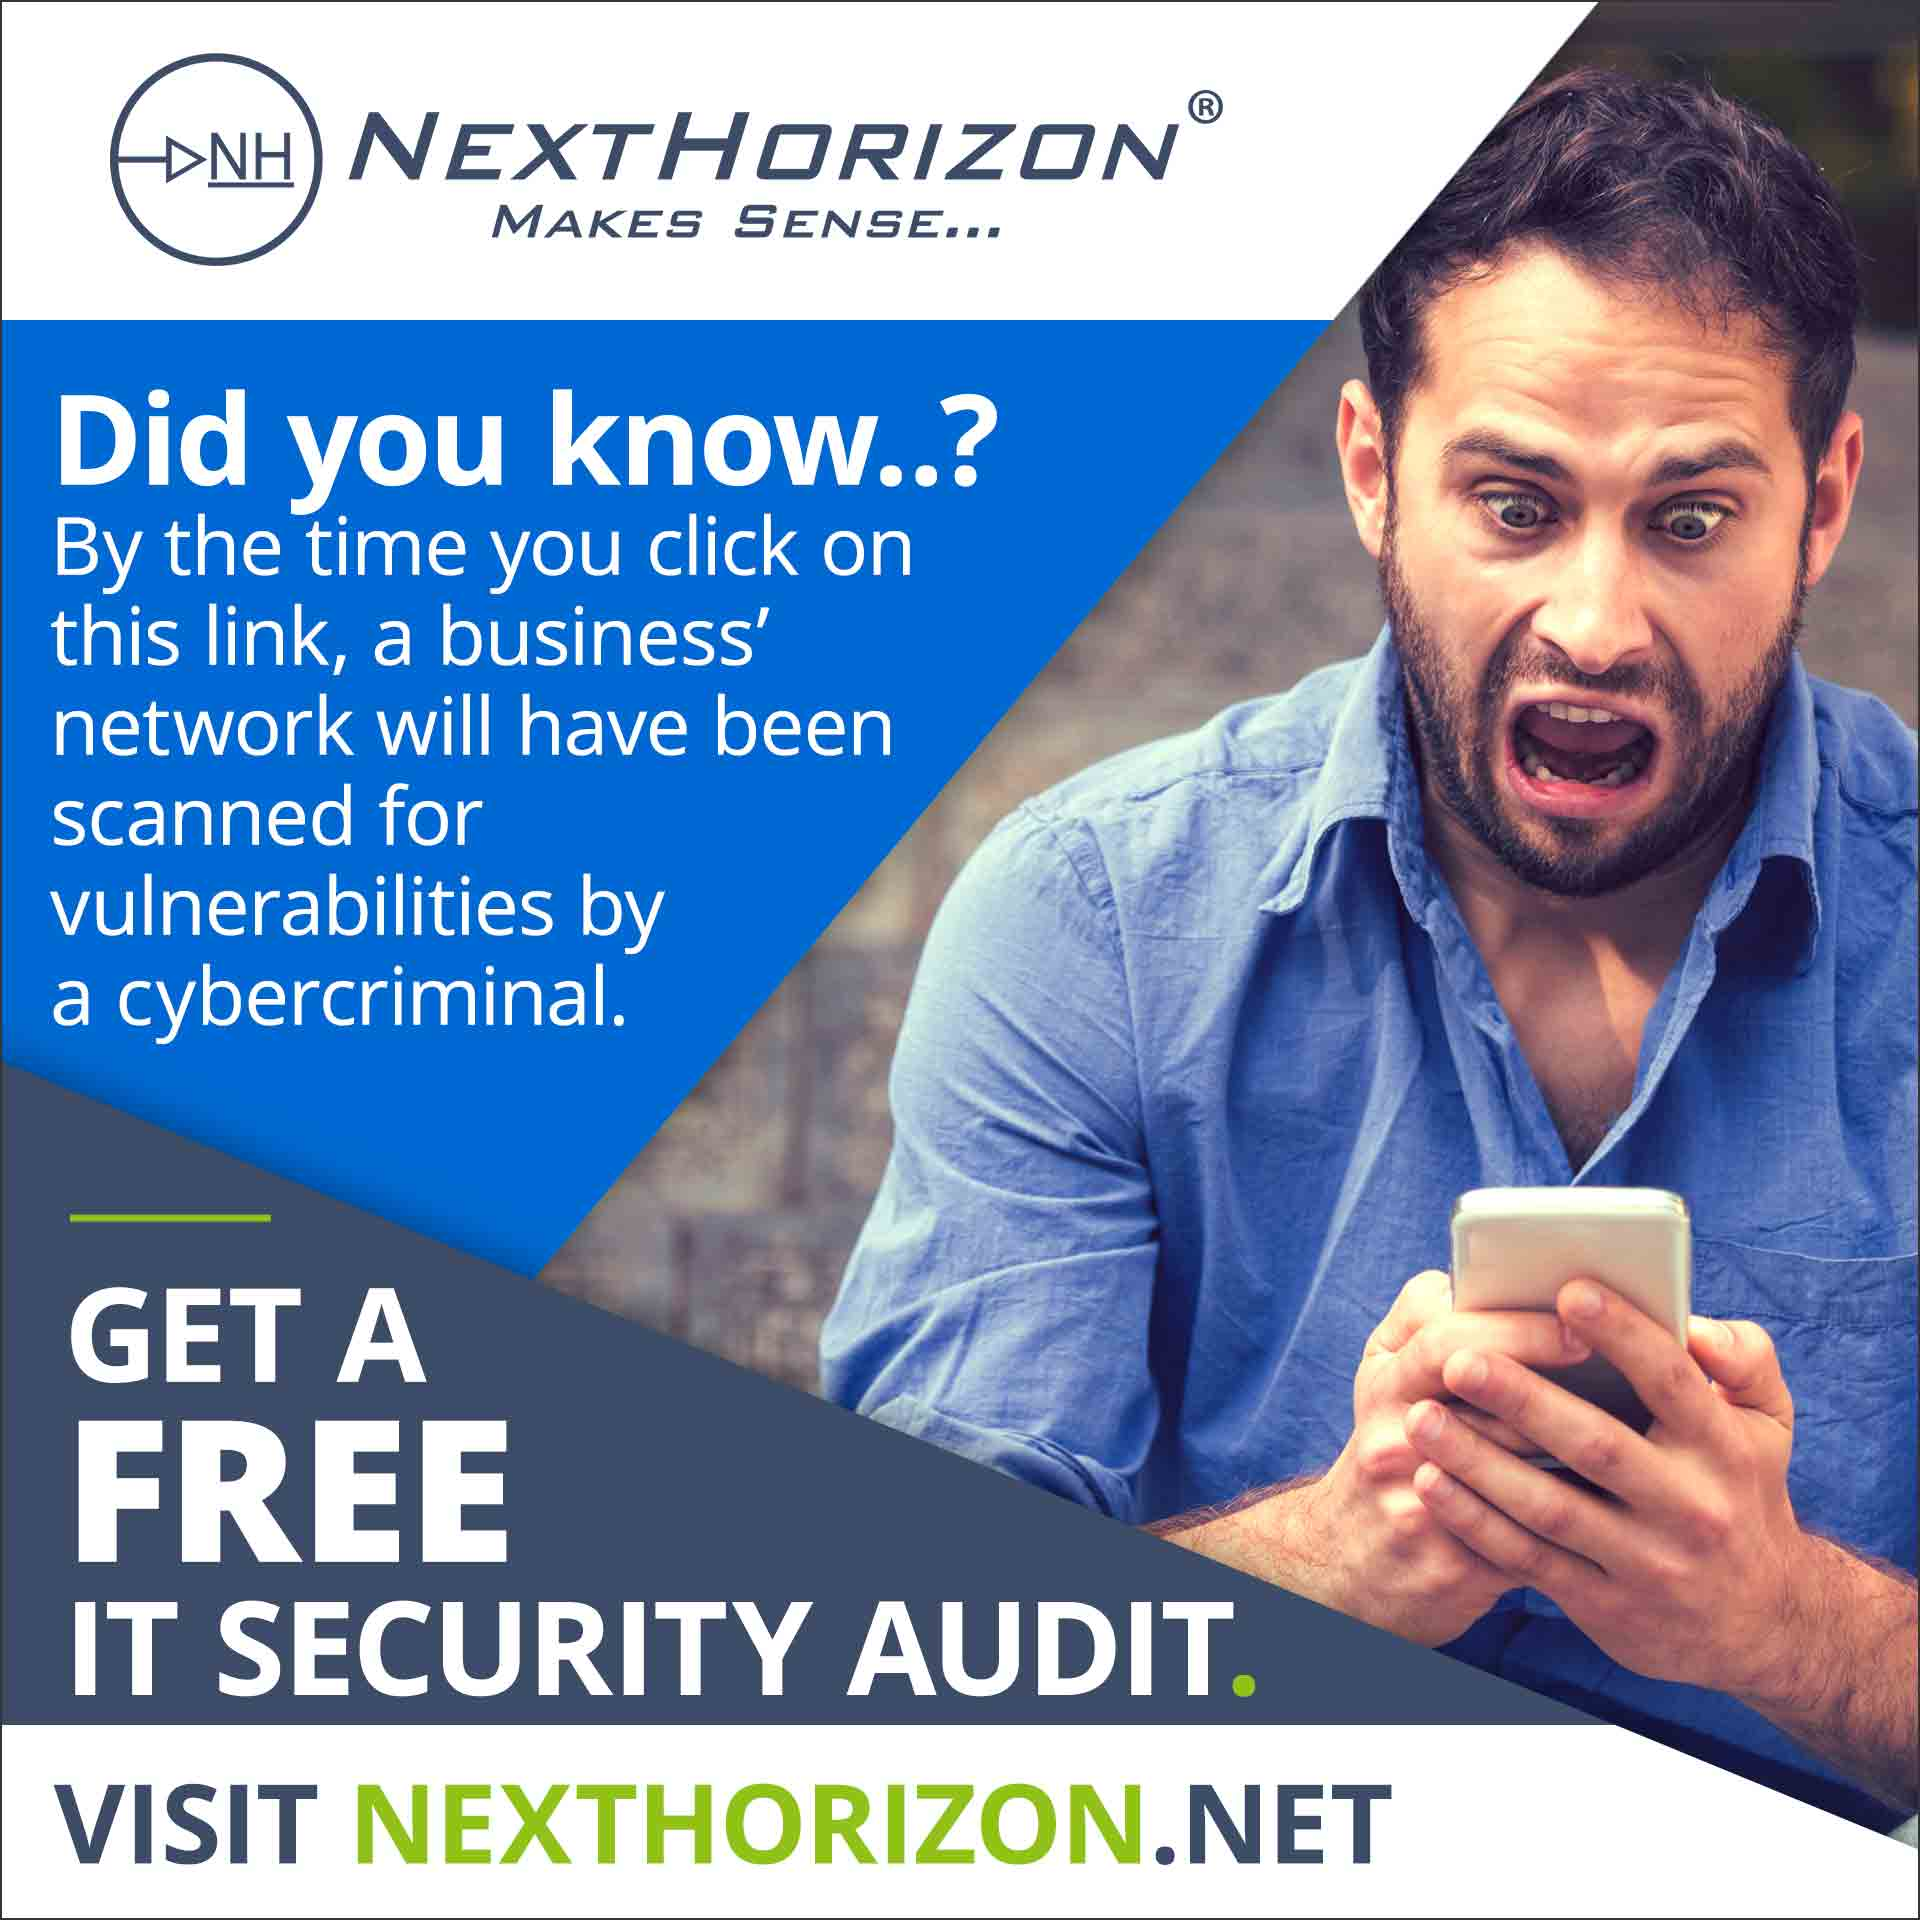 Is your business ready? Contact Next Horizon